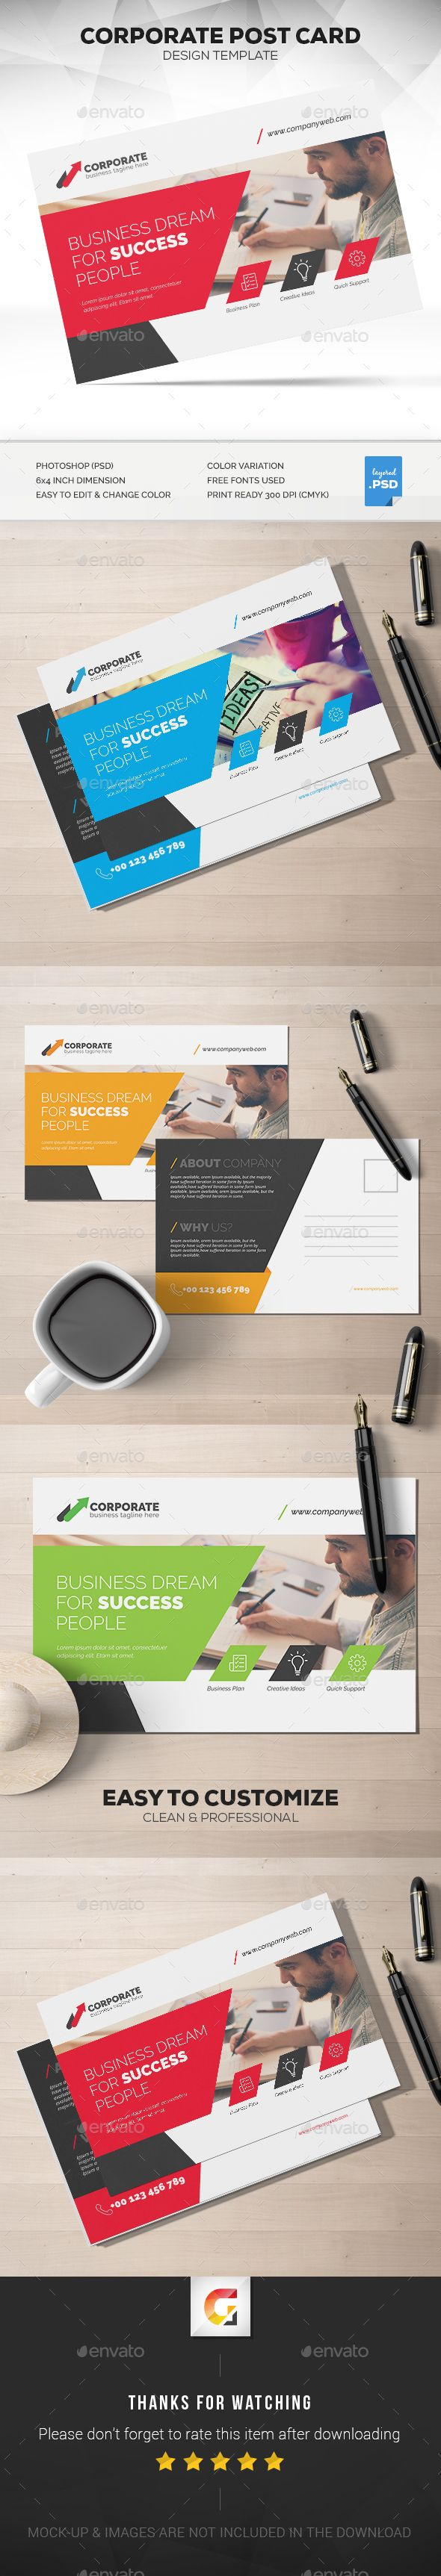 Best Direct Mail Images On Pinterest Postcard Design Marketing - Card template free: postcard mailing template